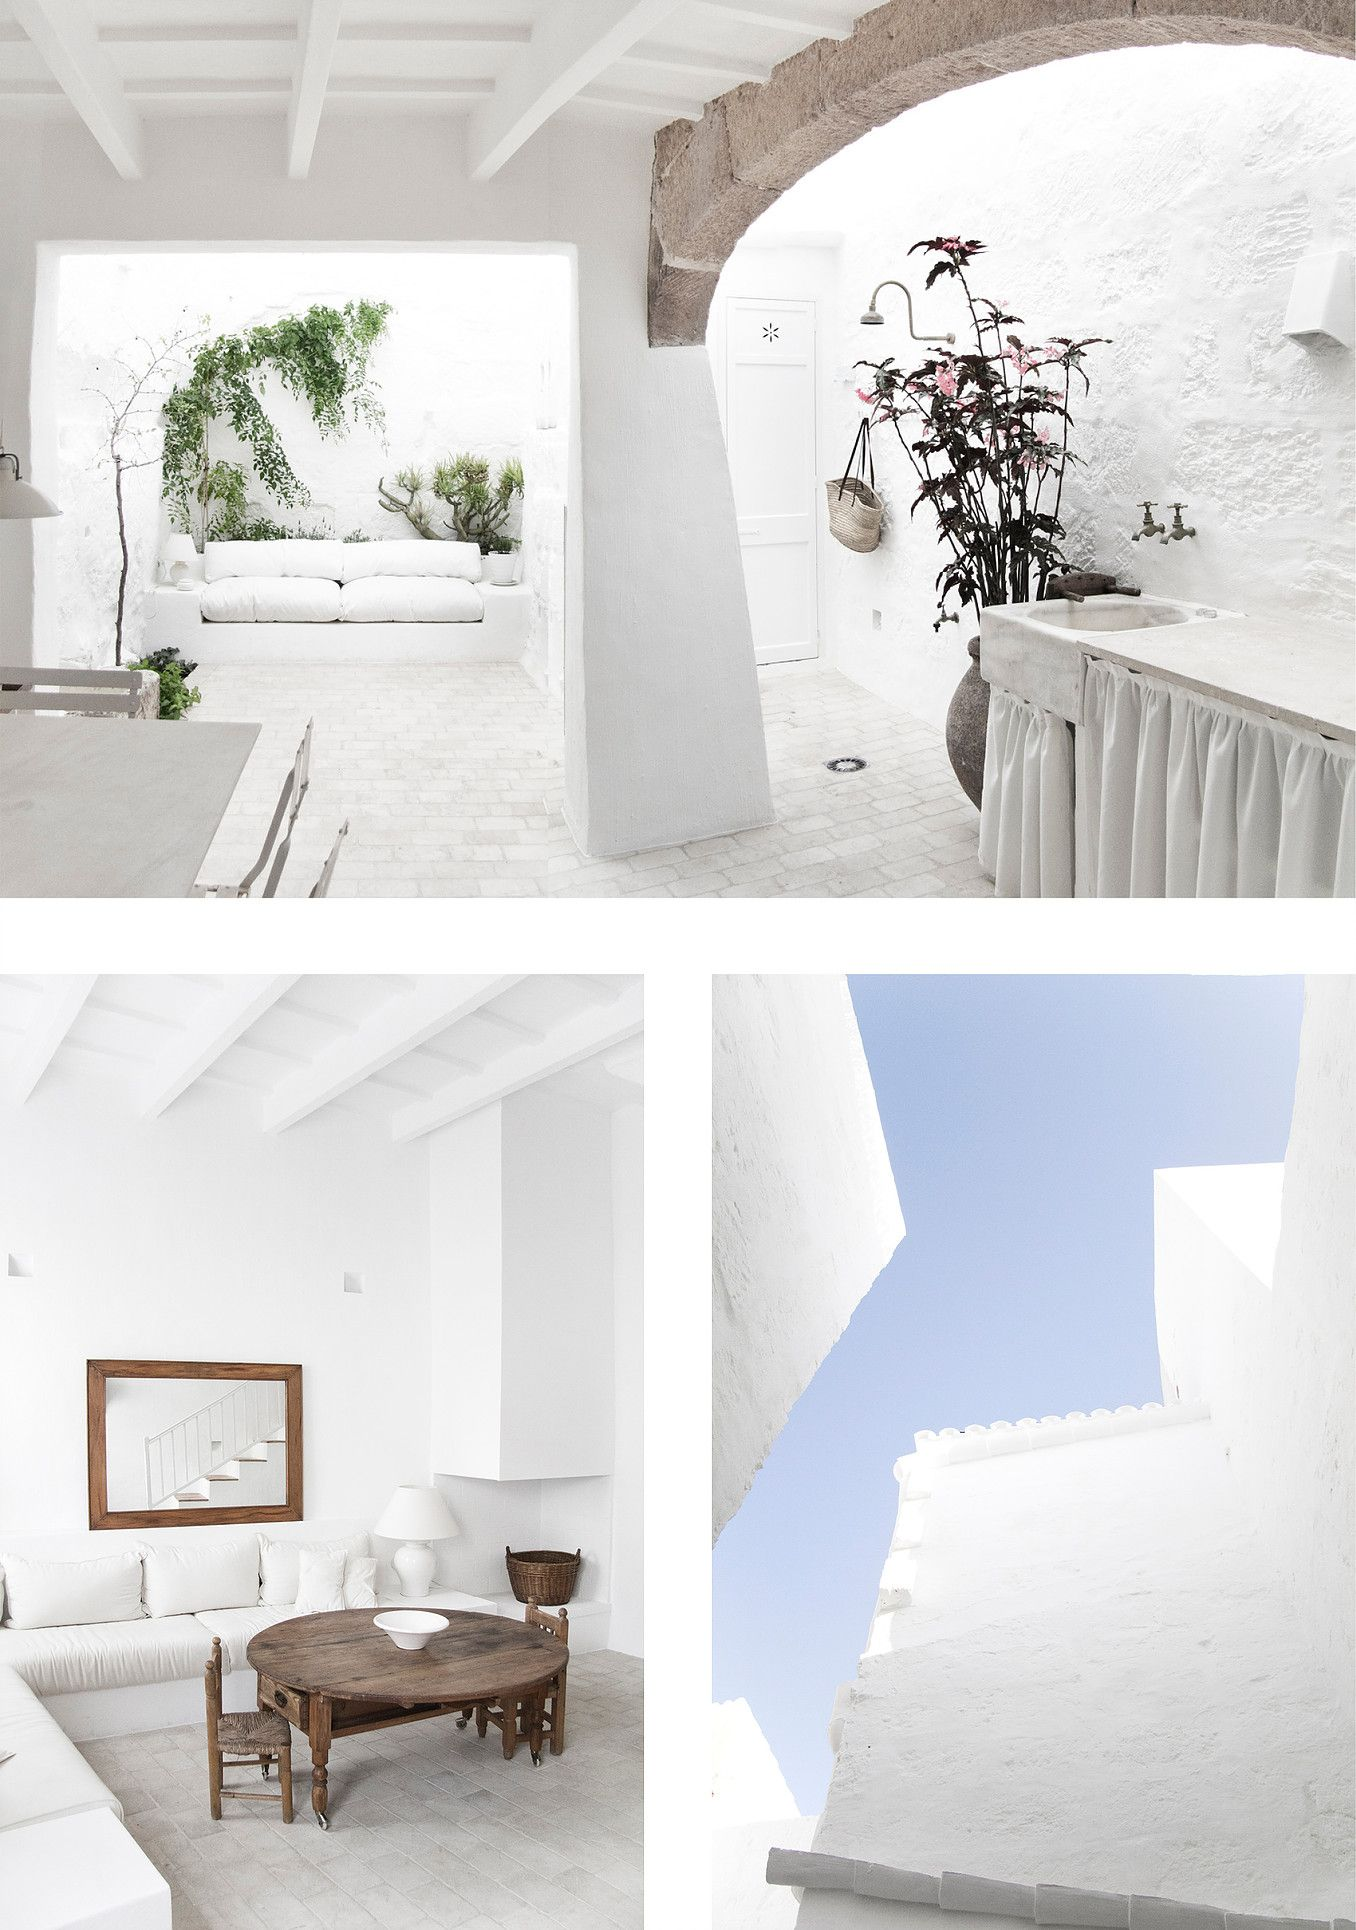 A Blissful Mediterranean Home - Klu Journal - Stay Inspired